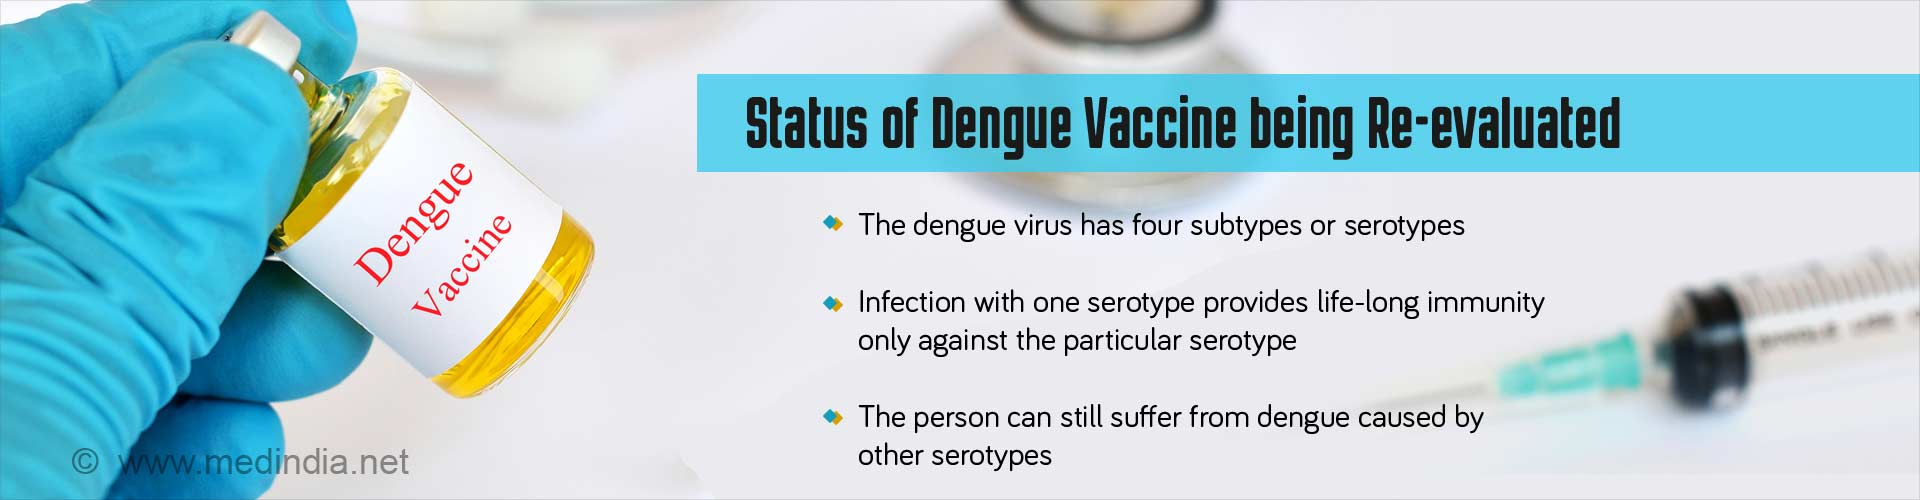 Status of dengue vaccine being re-evaluated